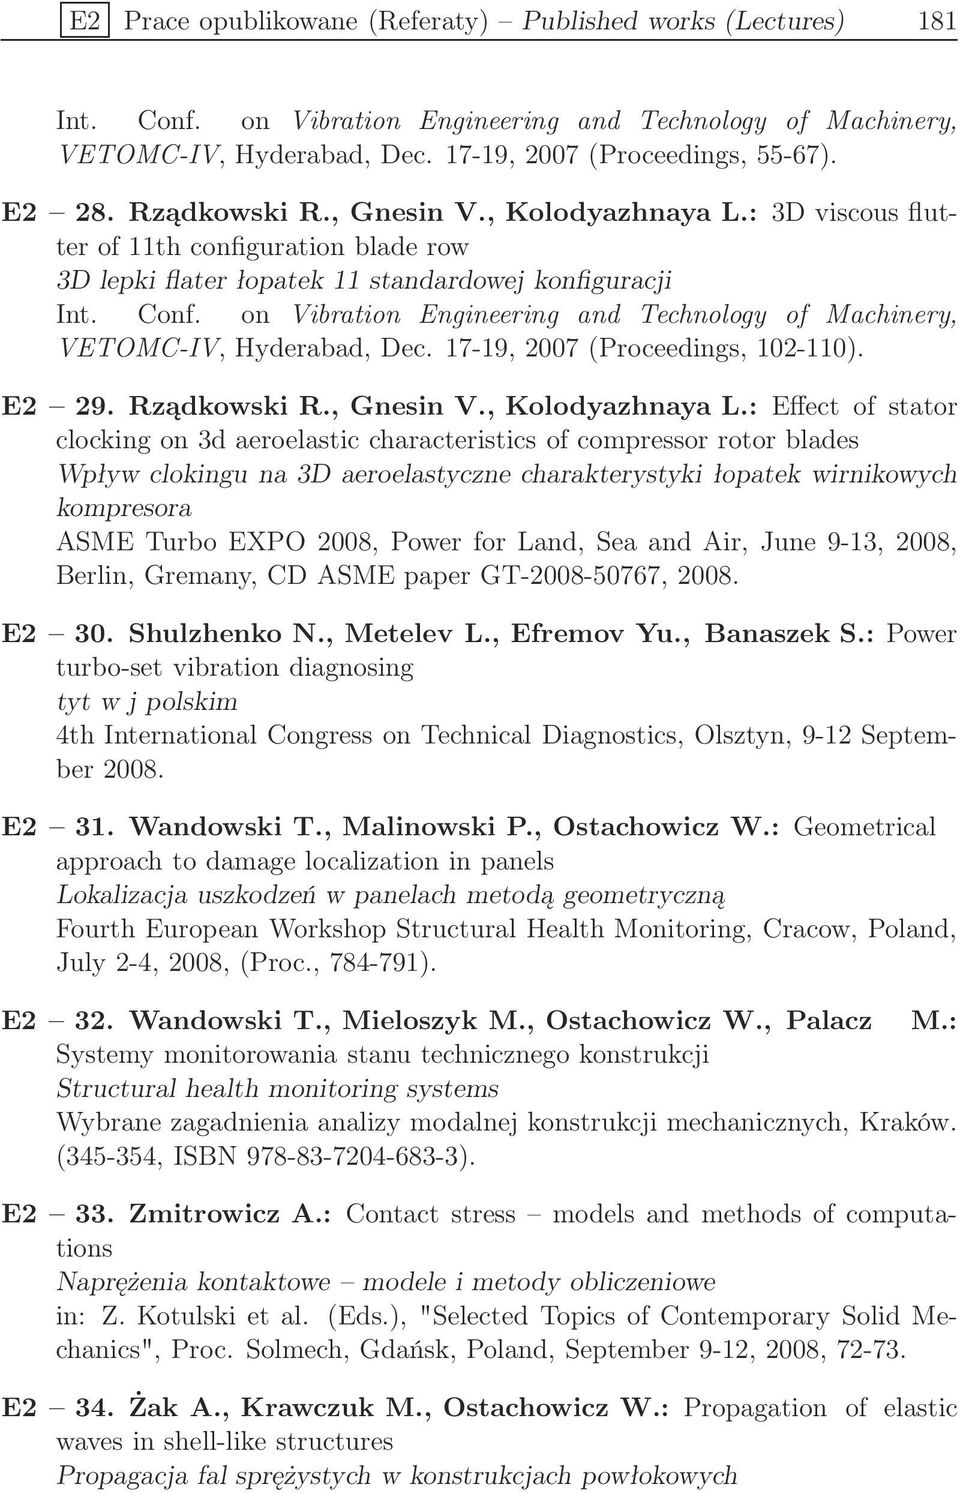 on Vibration Engineering and Technology of Machinery, VETOMC-IV, Hyderabad, Dec. 17-19, 2007 (Proceedings, 102-110). E2 29. Rządkowski R., Gnesin V., Kolodyazhnaya L.